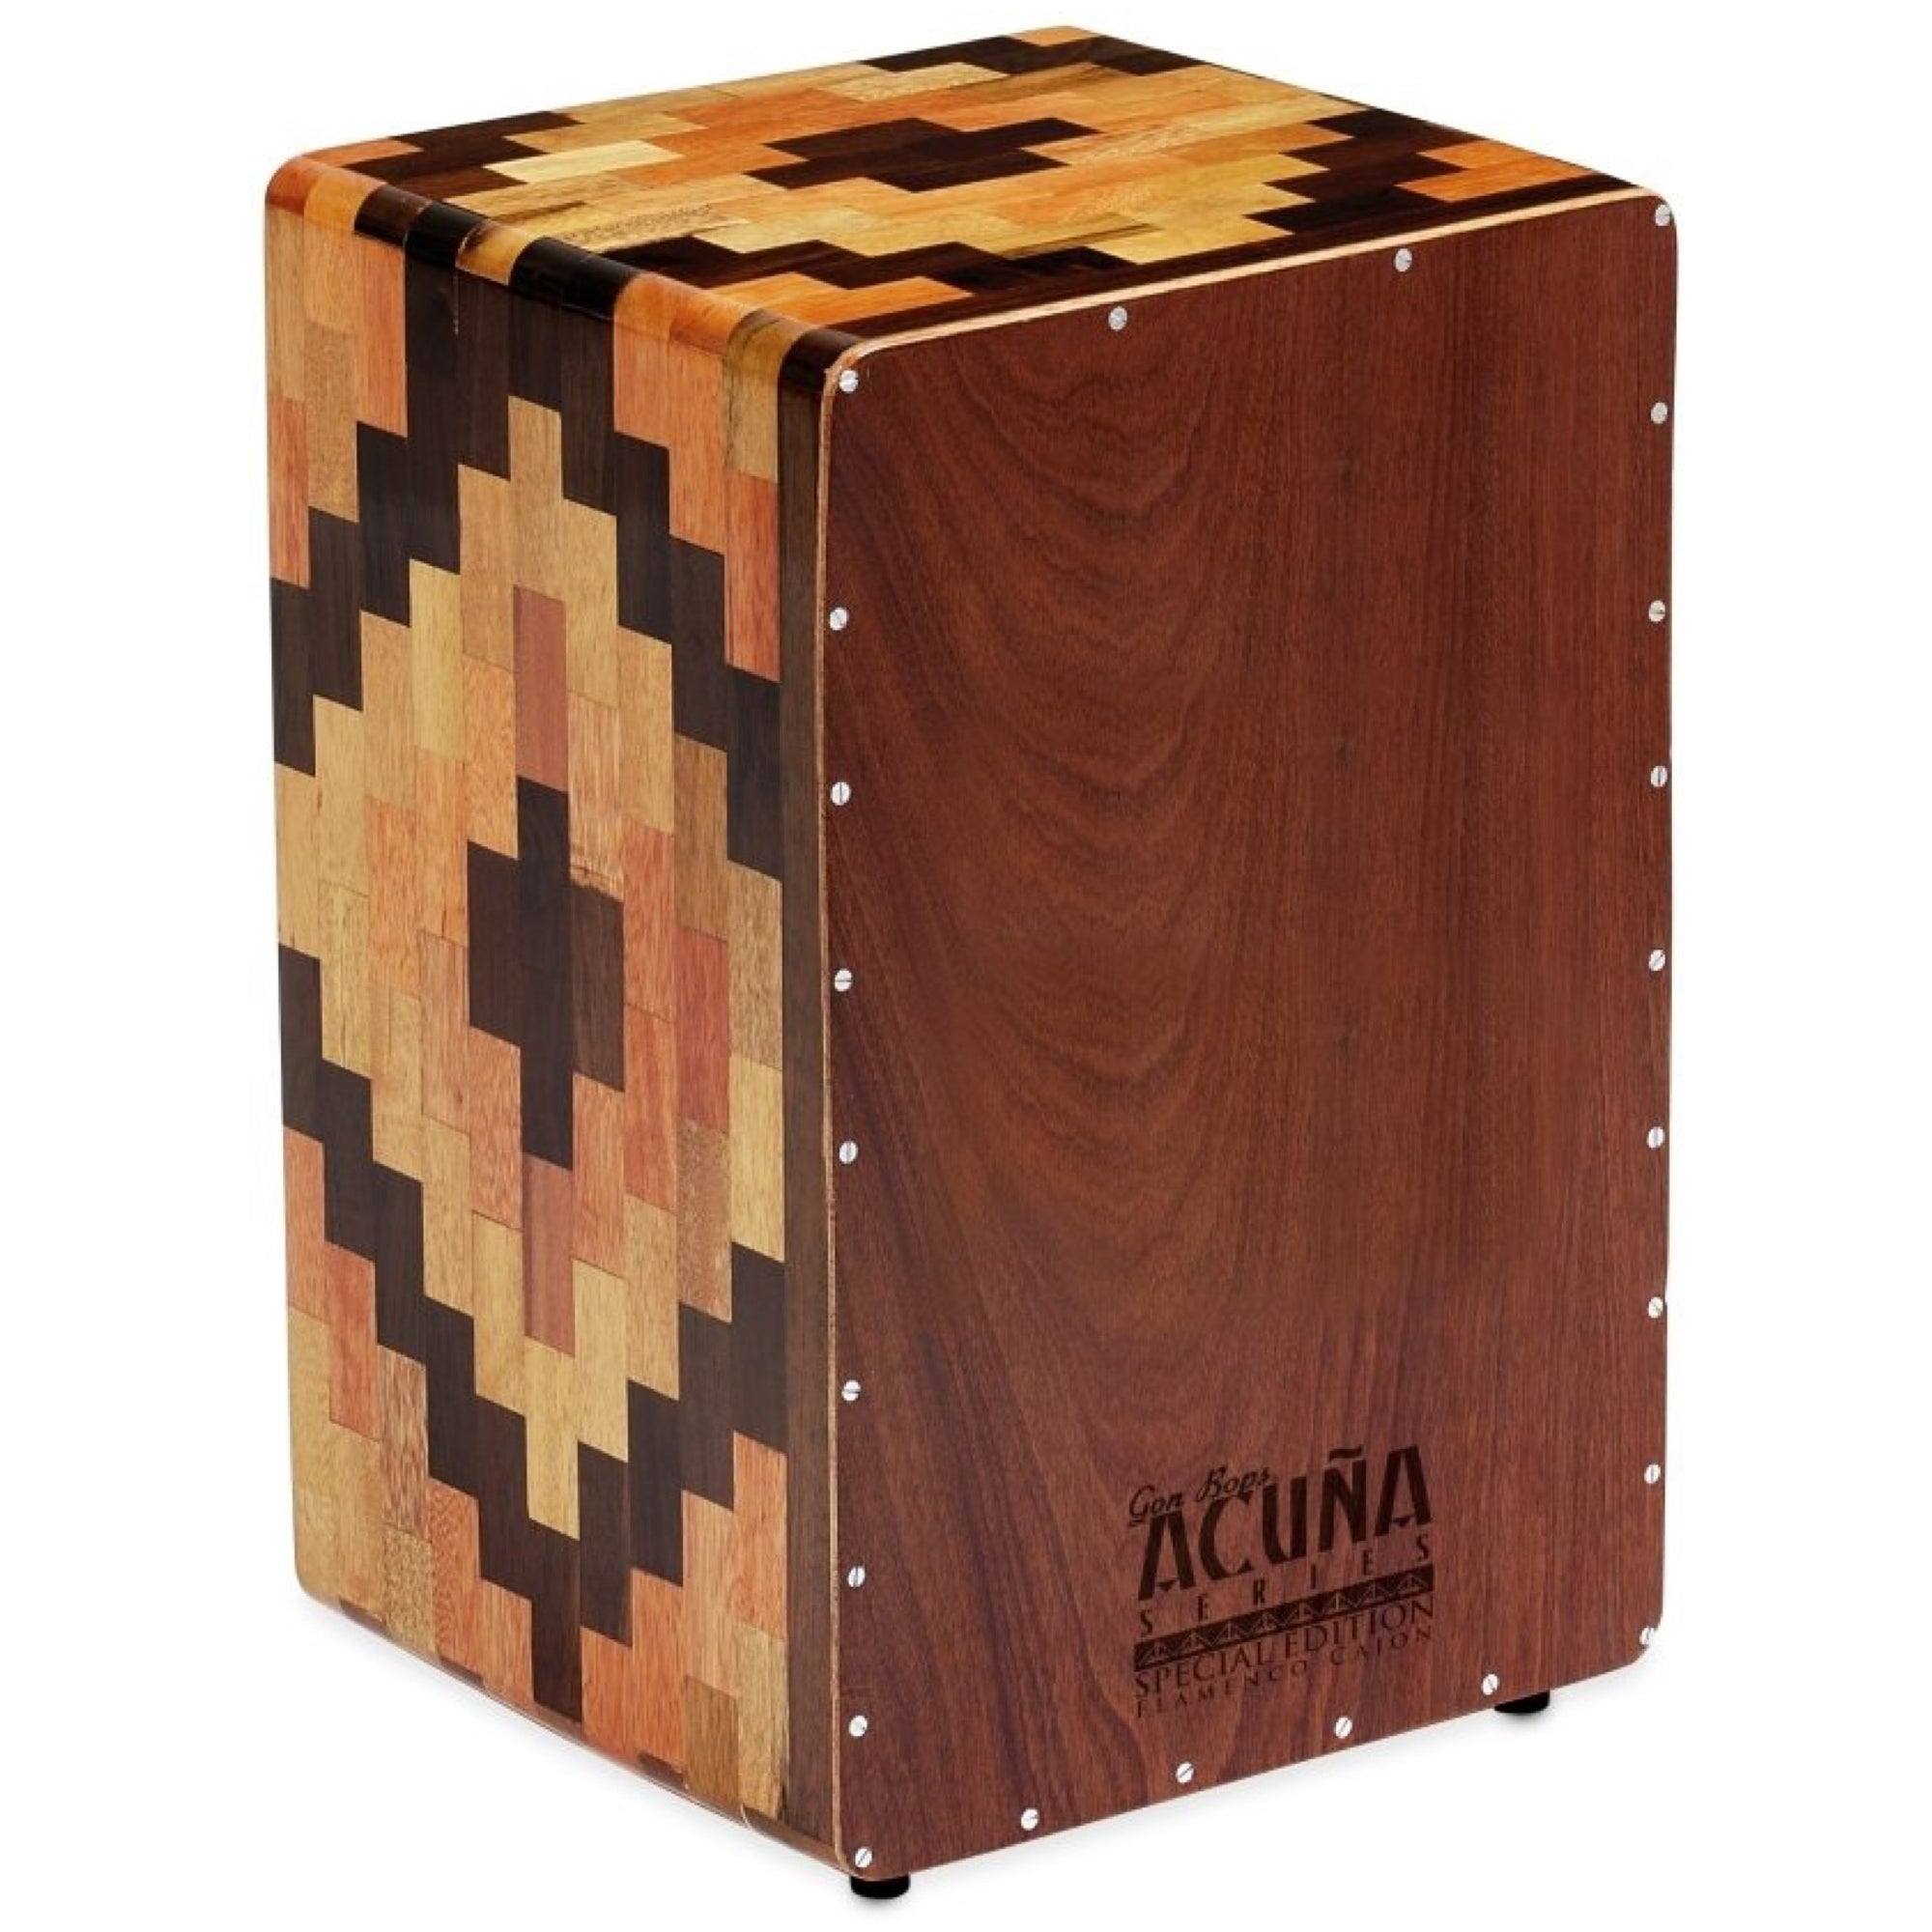 Gon Bops Alex Acuna Special Edition Cajon, with Gig Bag